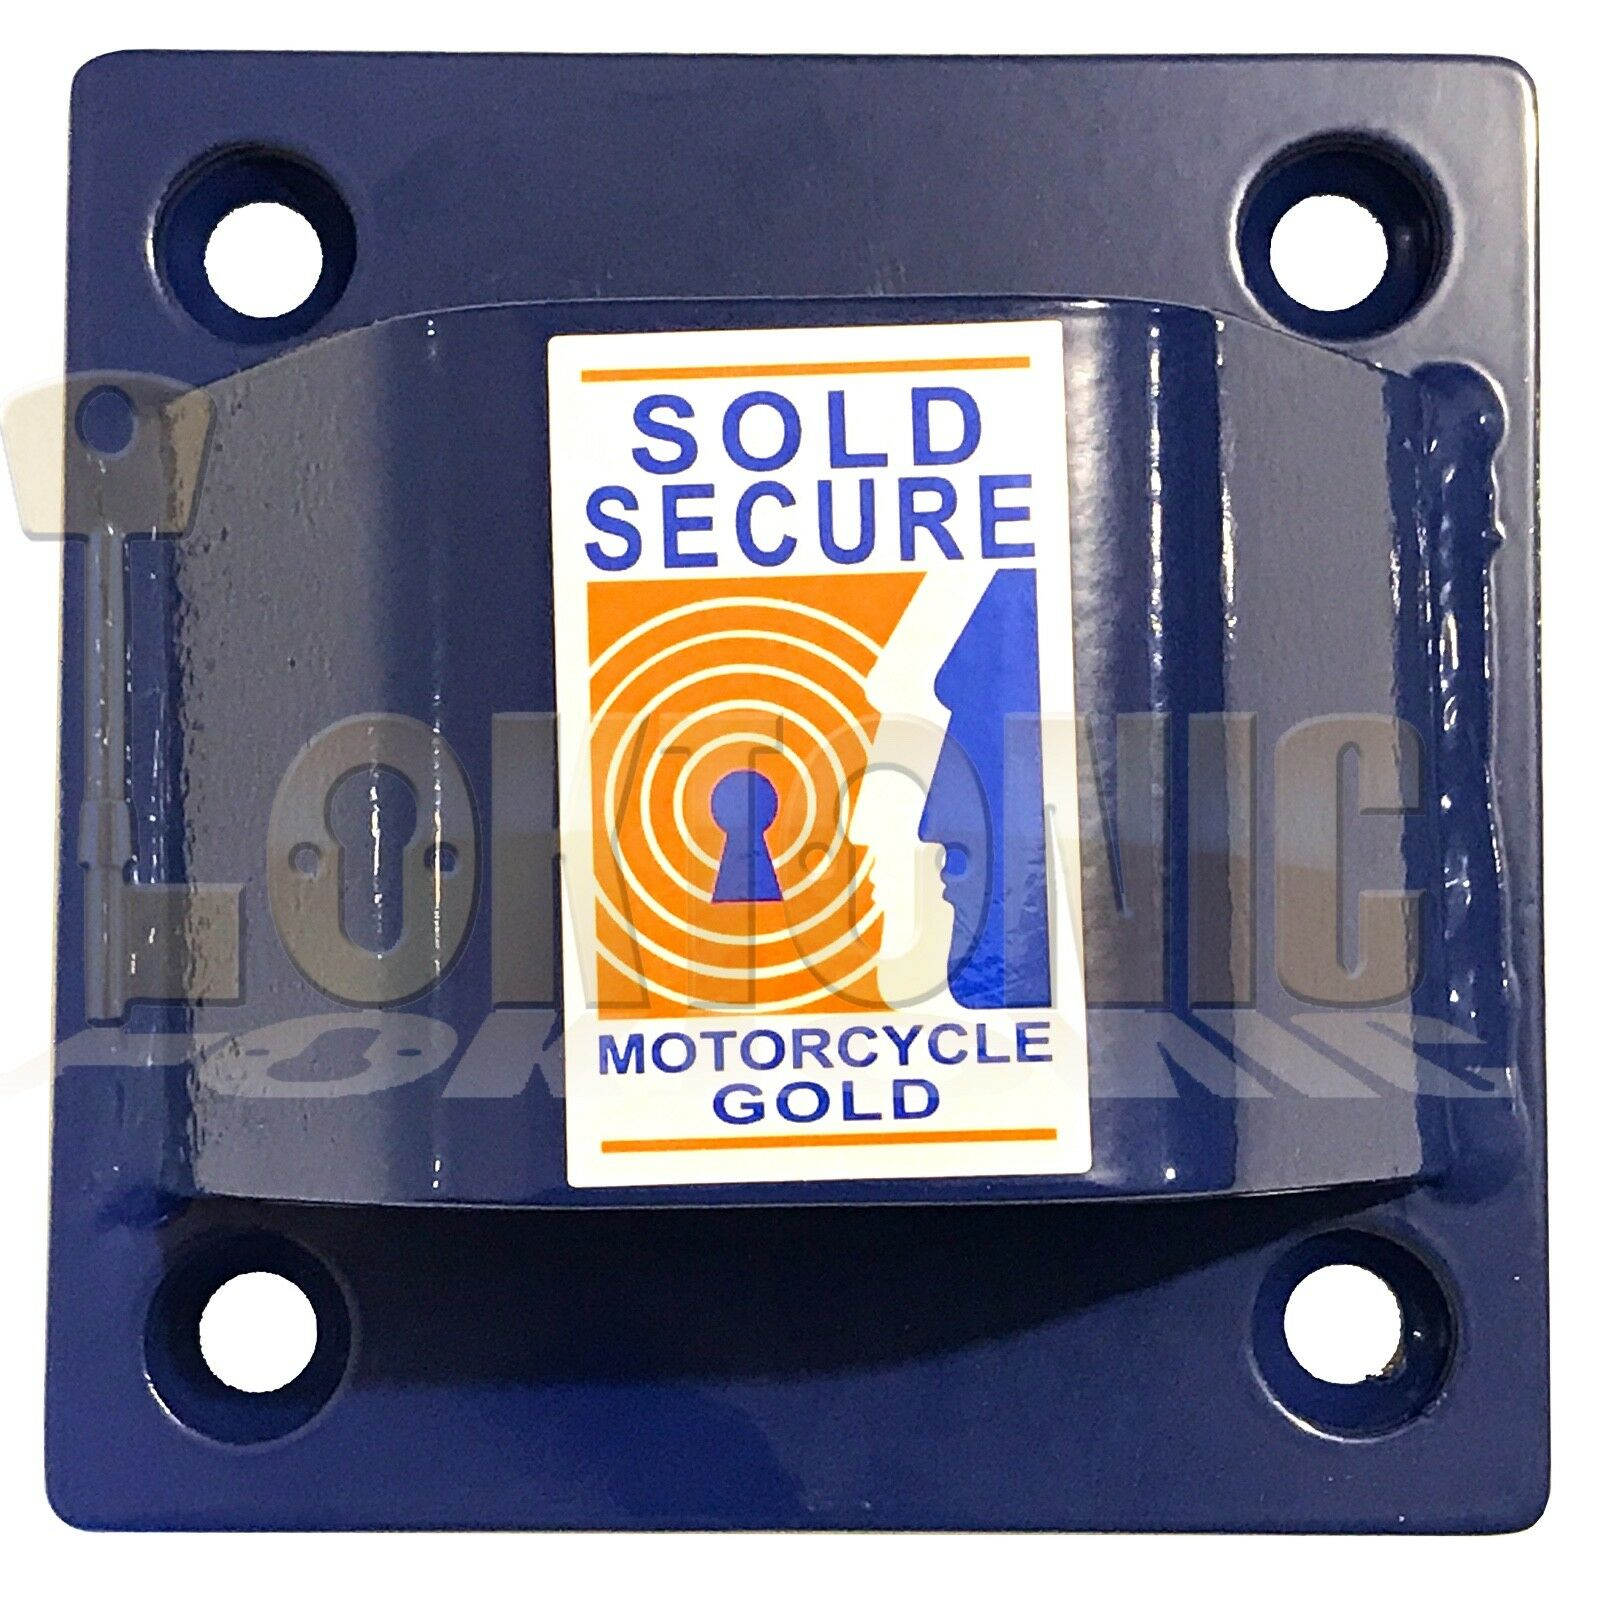 Sold Secure Gold Motorcycle Locks